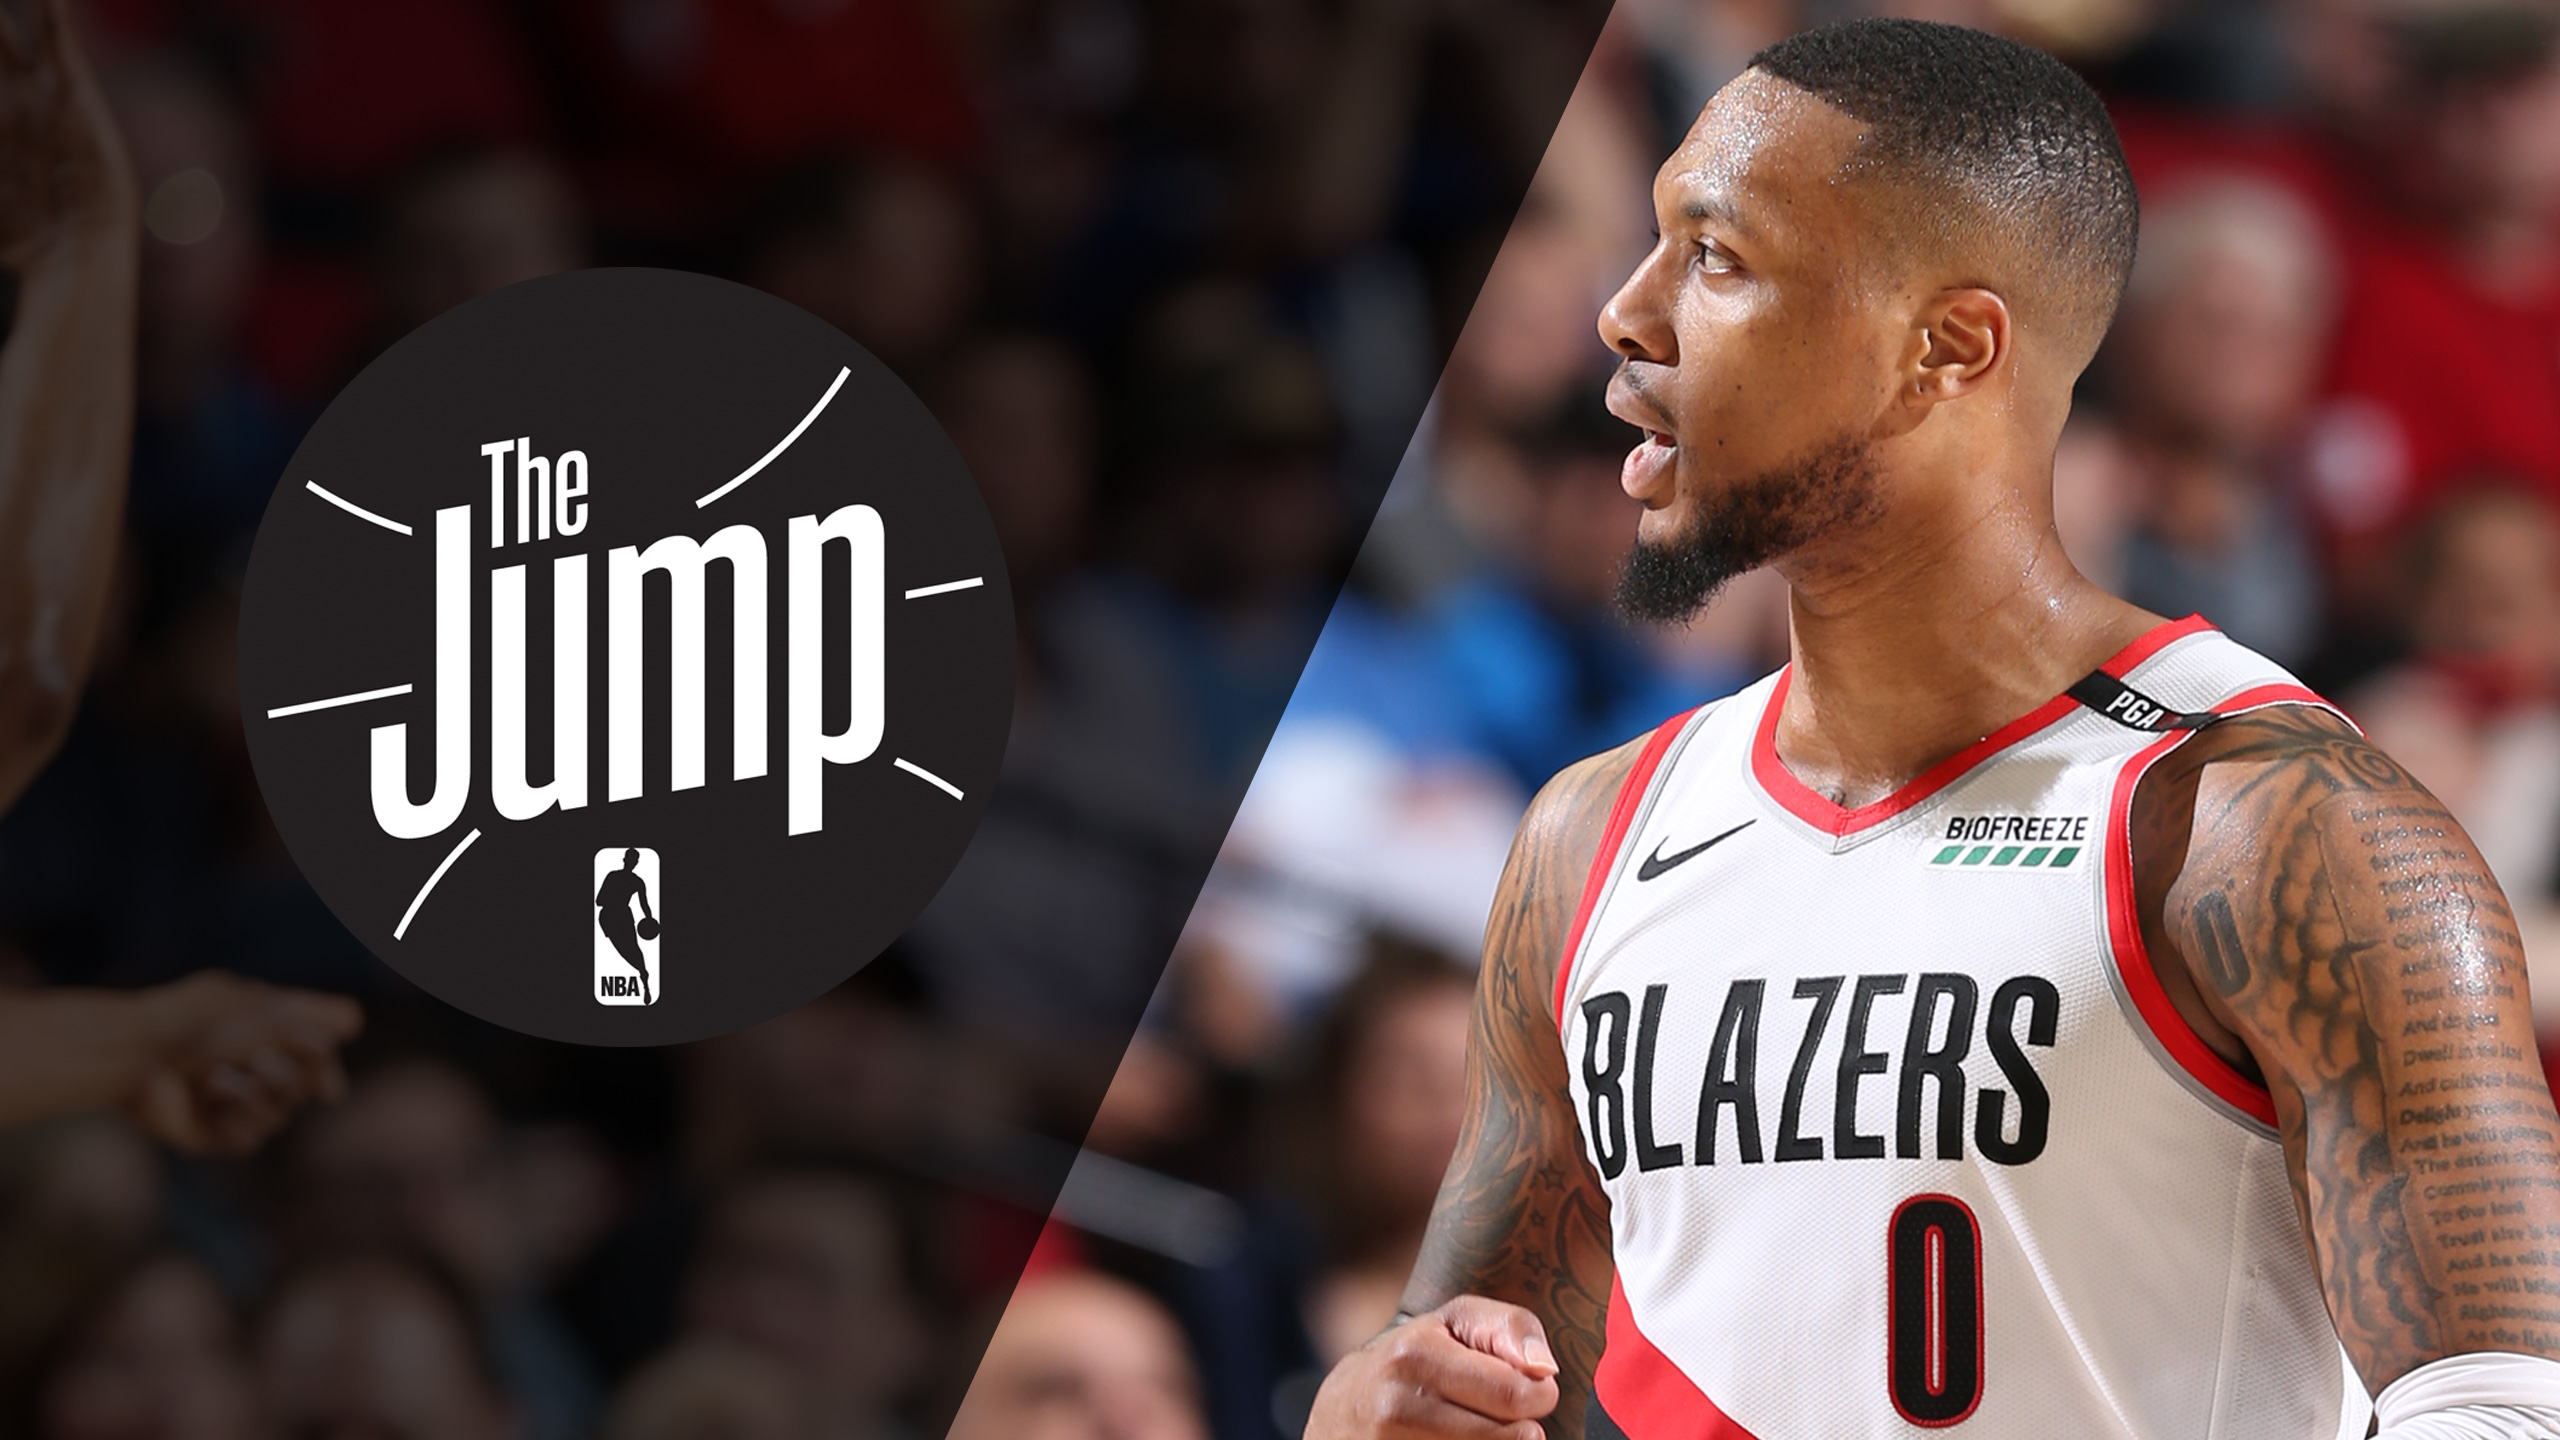 Fri, 3/22 - NBA: The Jump